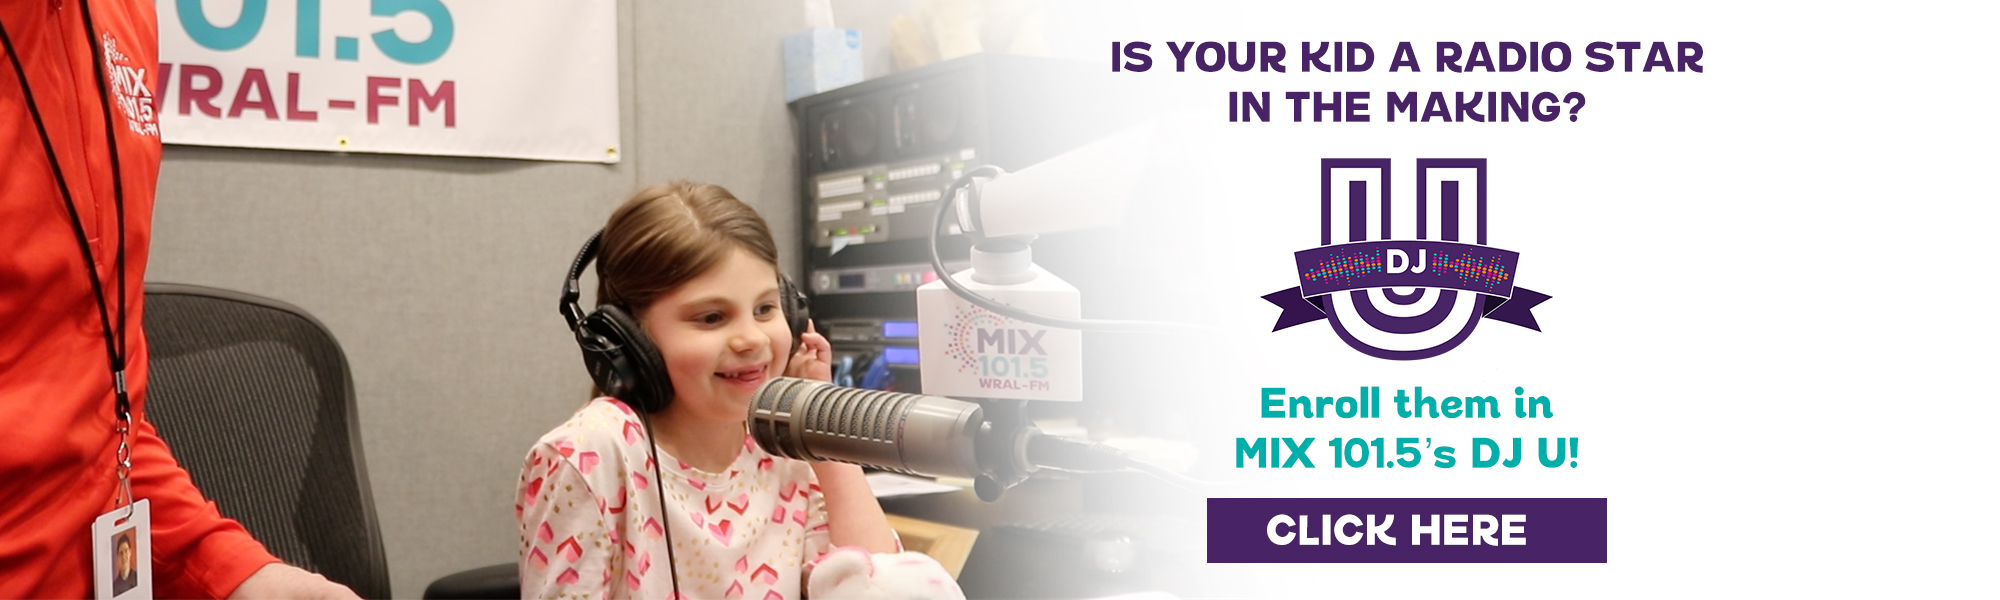 MIX 101 5 FM | WRAL Radio | WRALFM Raleigh Station LIVE Stream